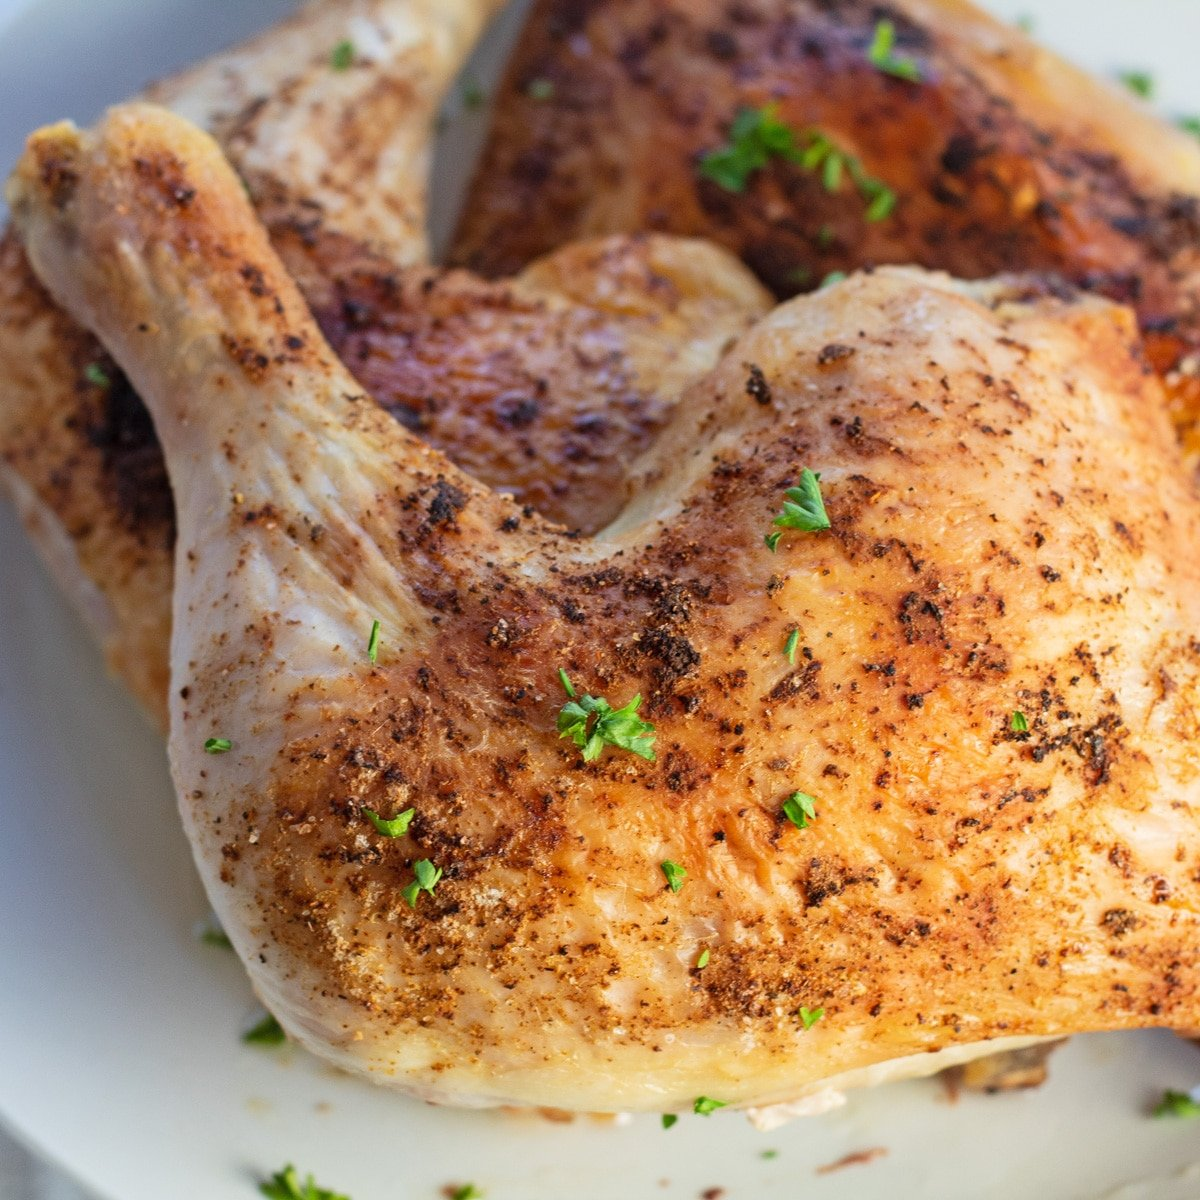 Baked chicken quarters garnished with parsley.